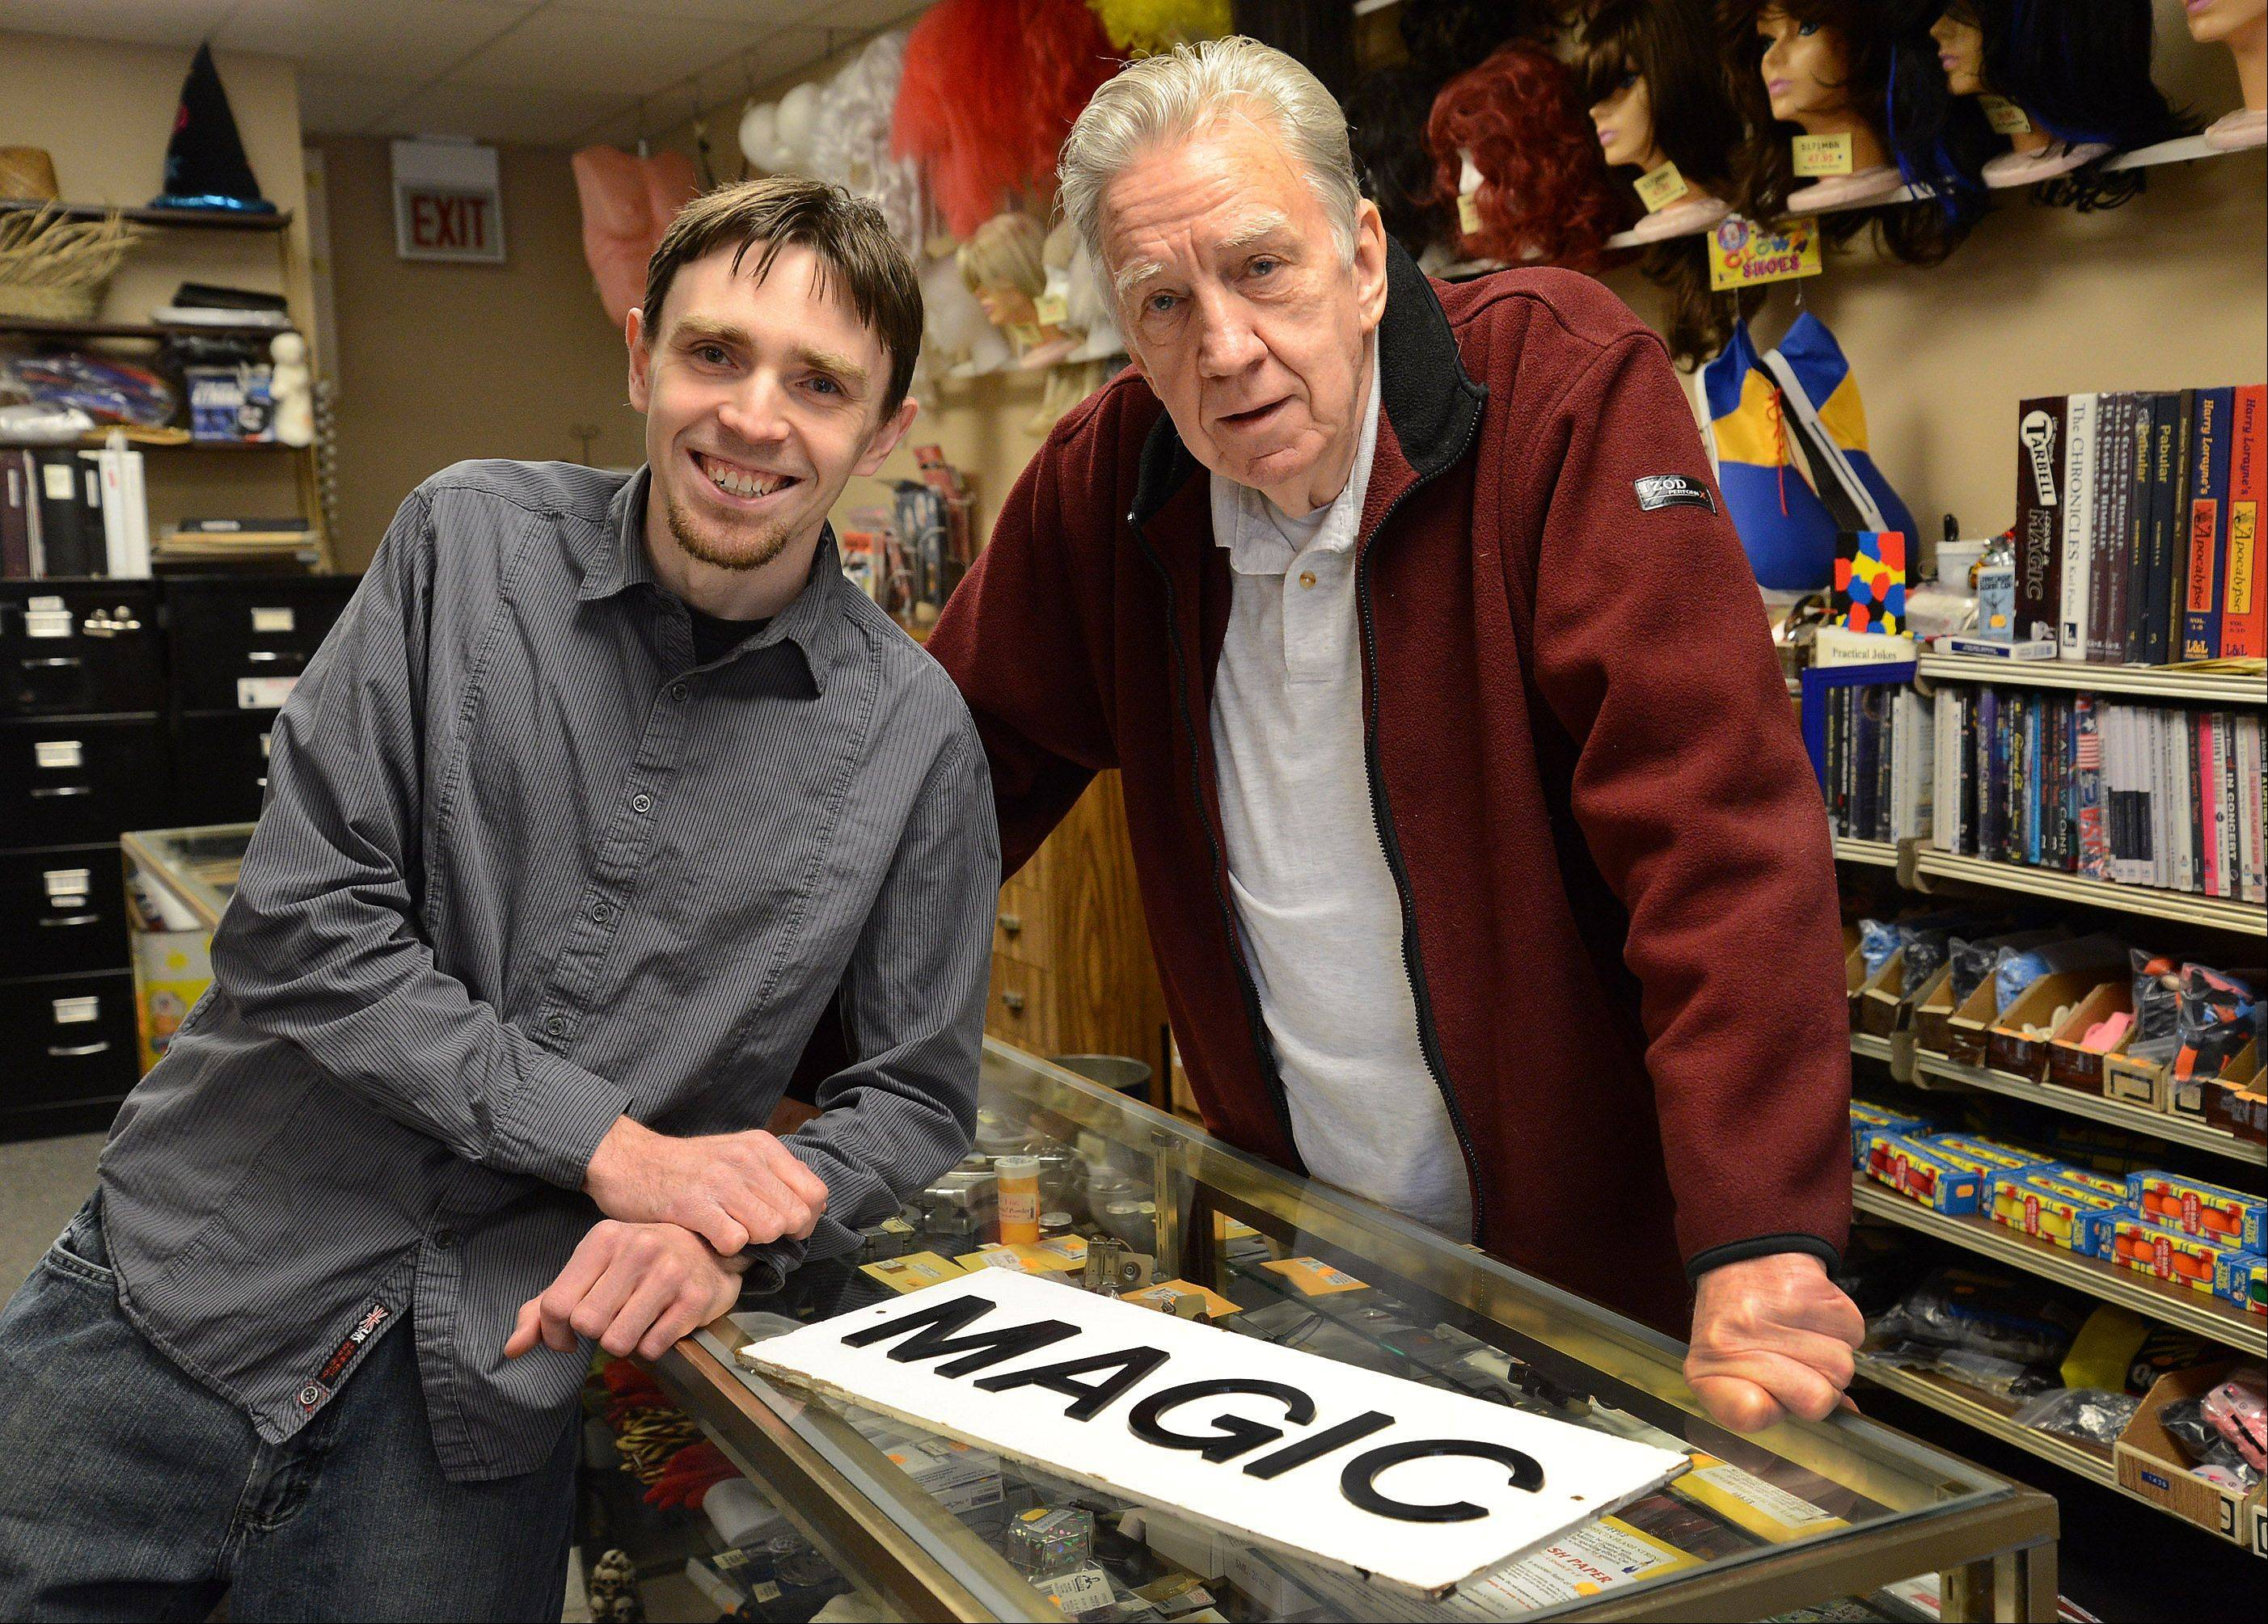 Father and son, Phil, right, and Brian Johnson have fun while working at PJ's Trick Shop in Arlington Heights.